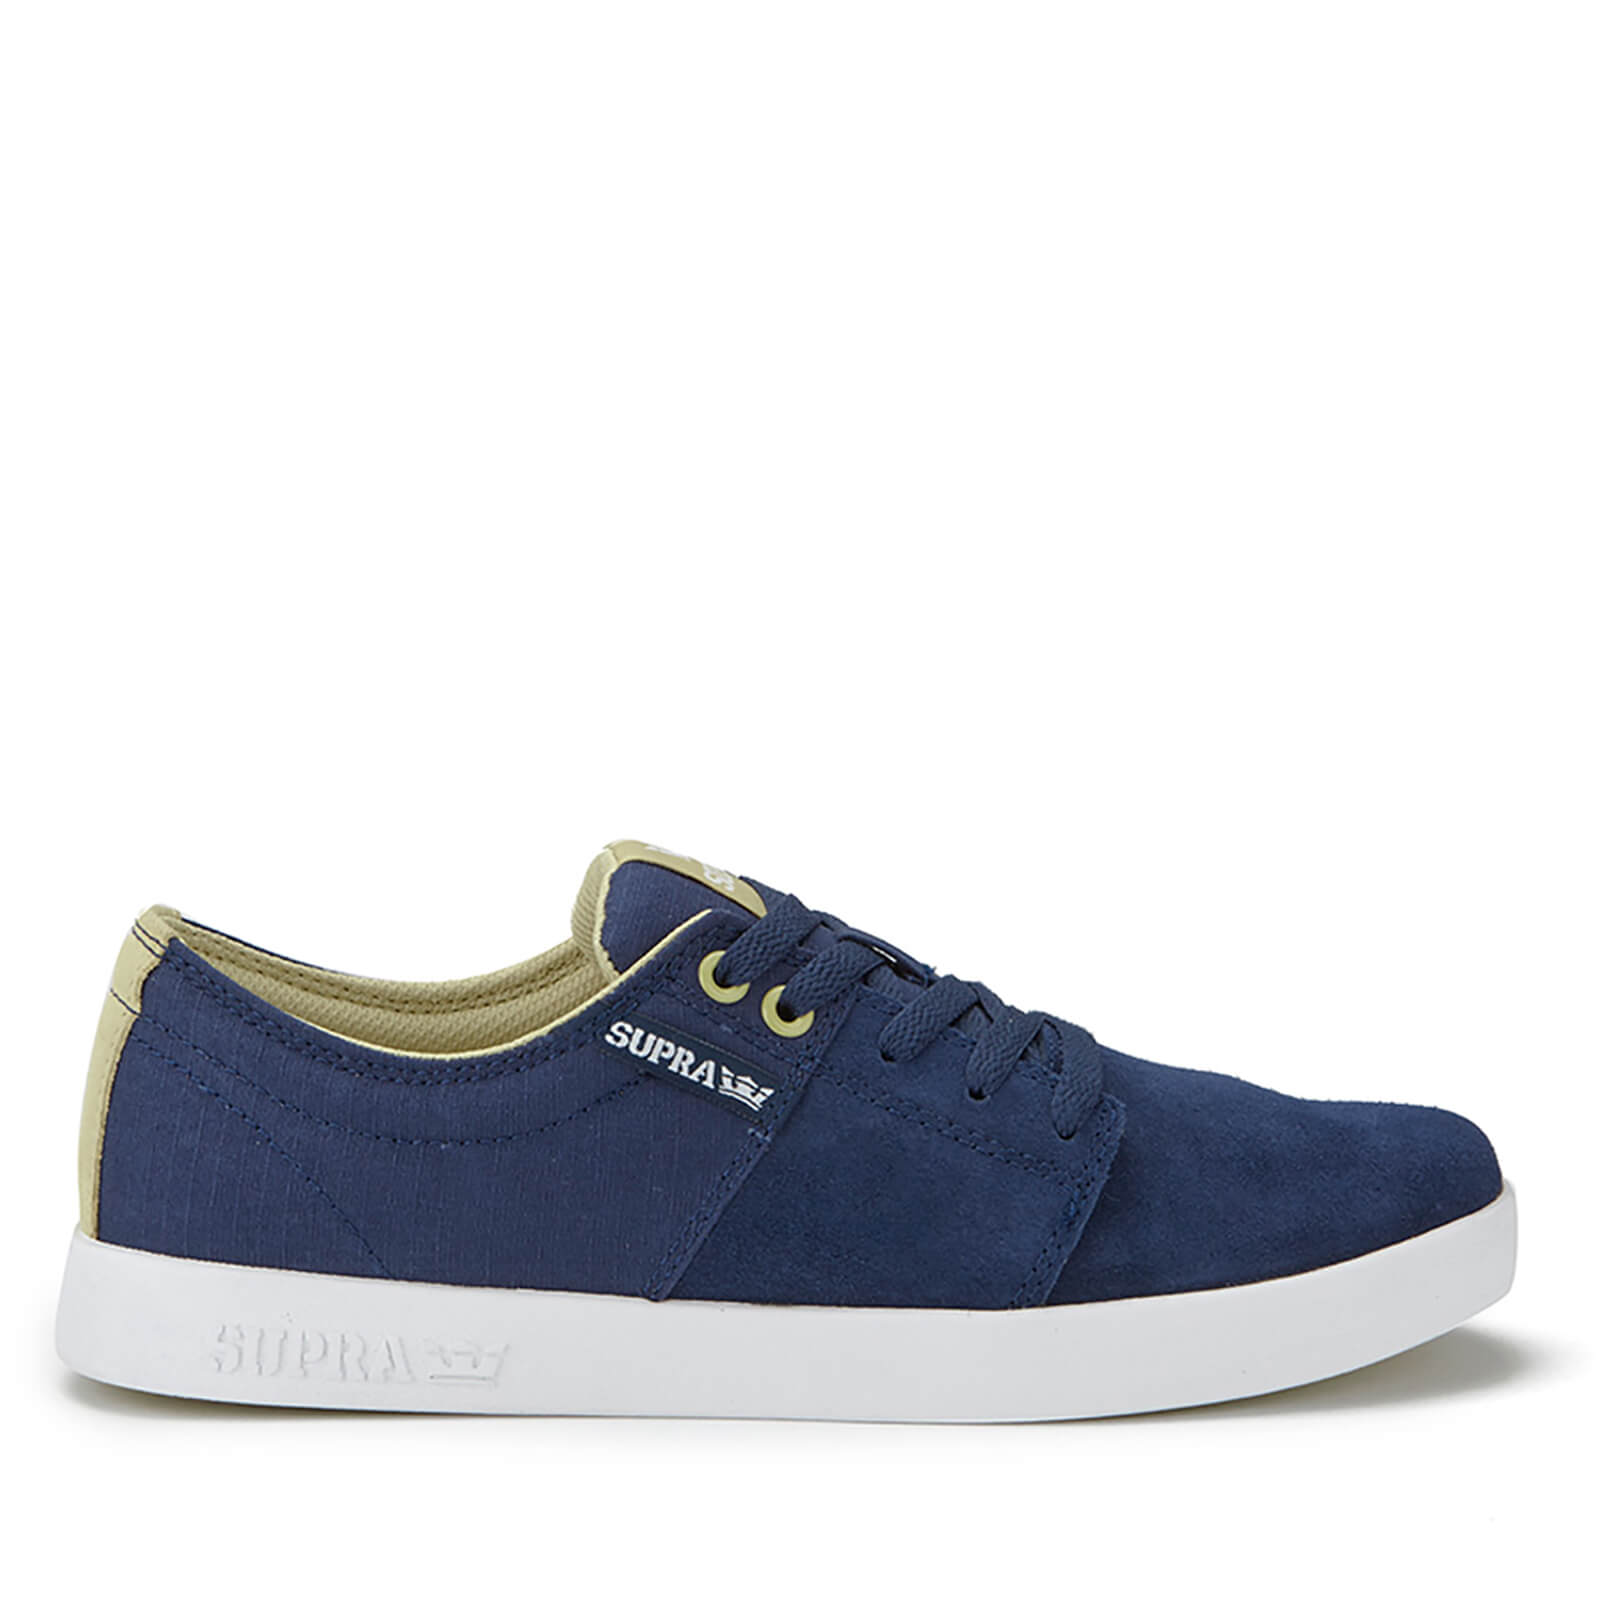 Baskets Homme Supra Stacks II - Bleu Marine